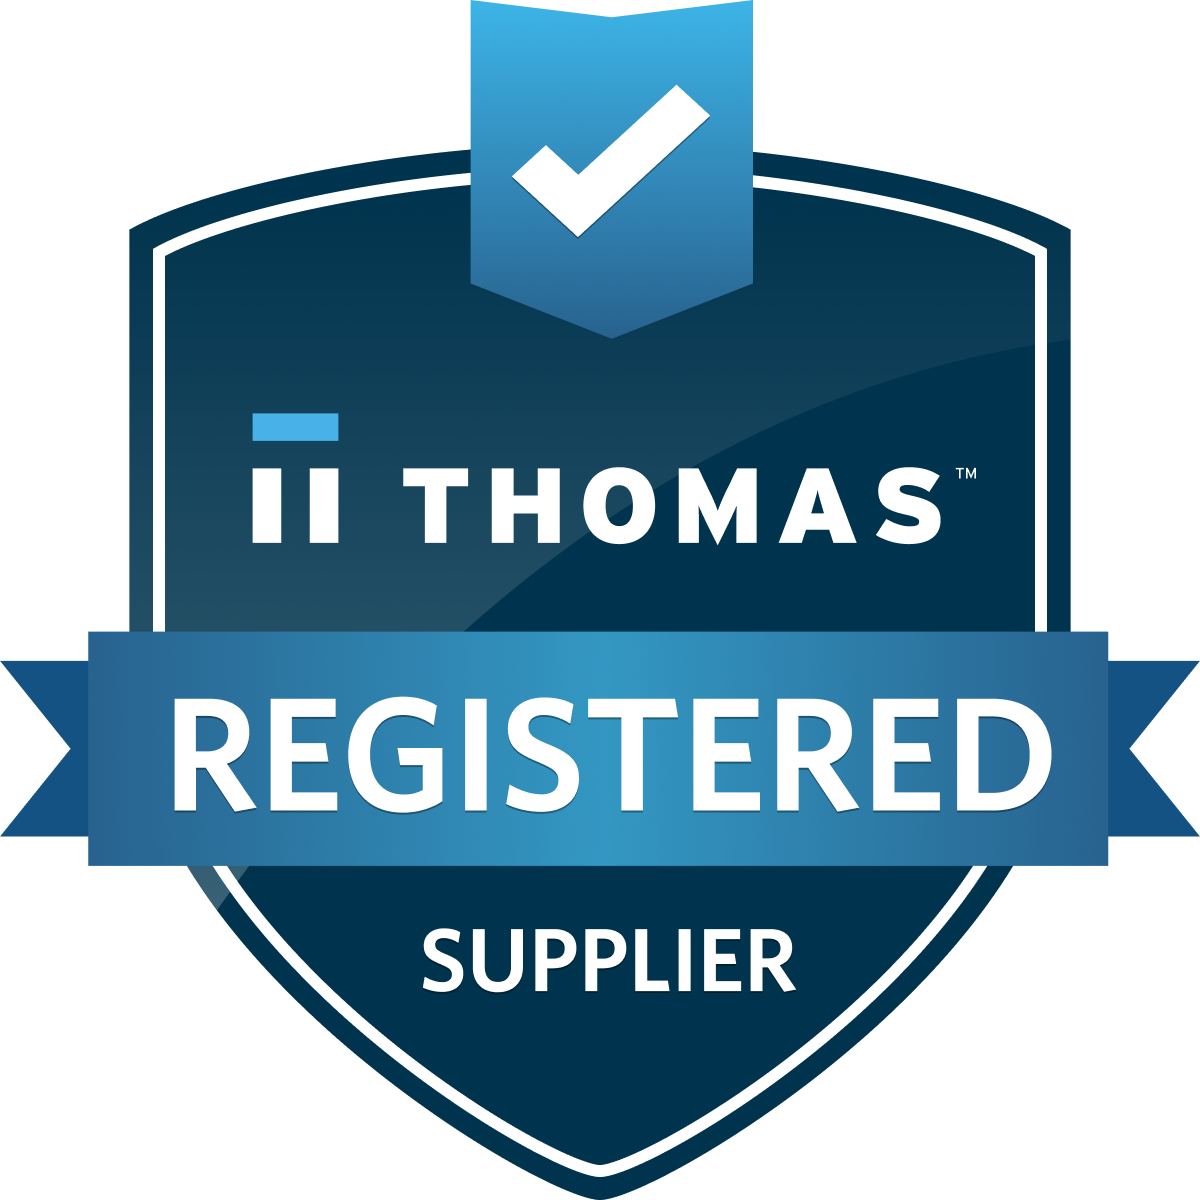 thomas-registered-supplier-shield